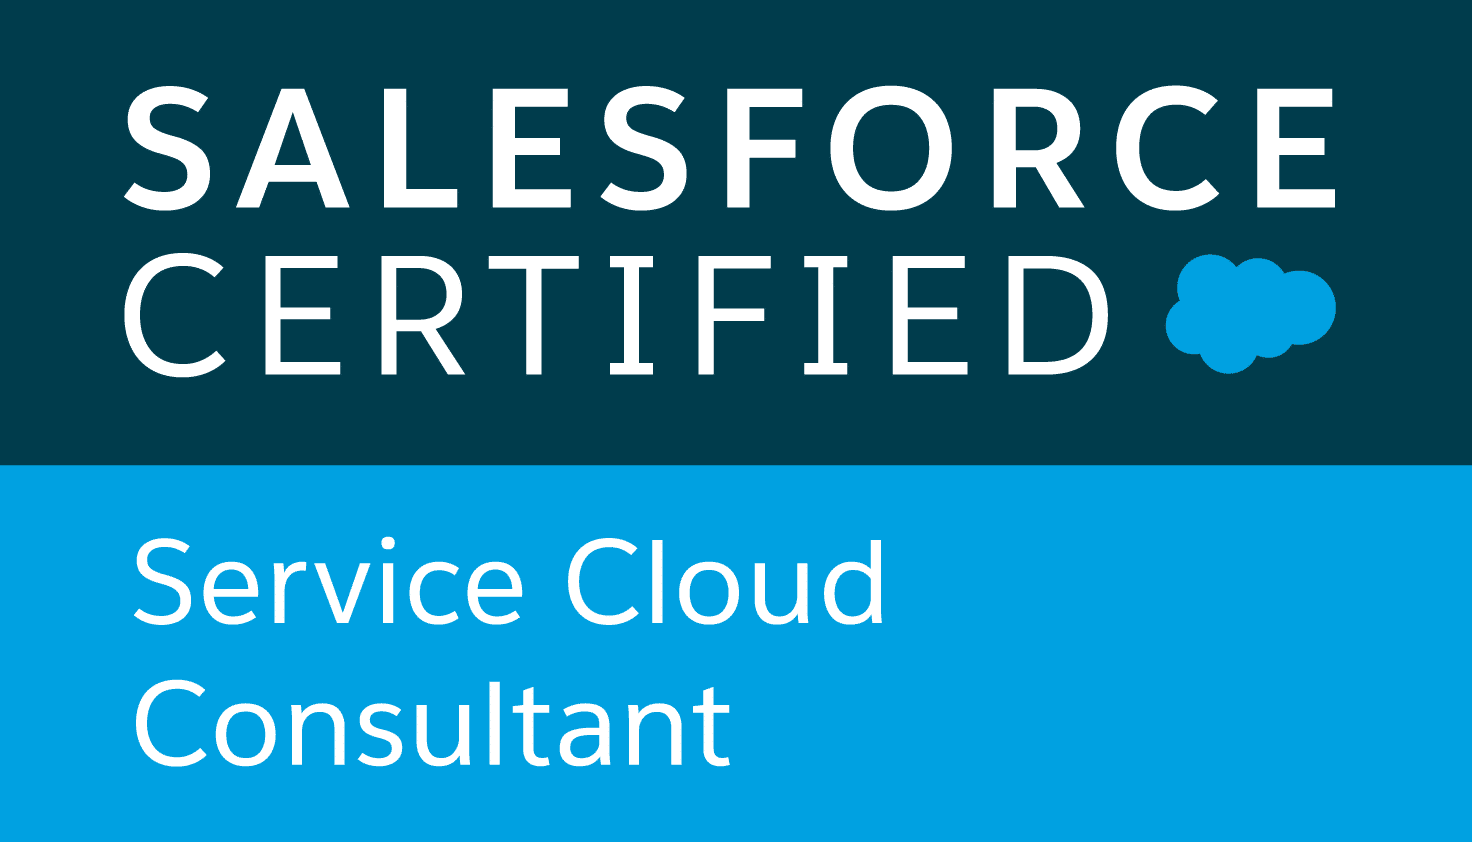 Salesforce - Service Cloud Consultant